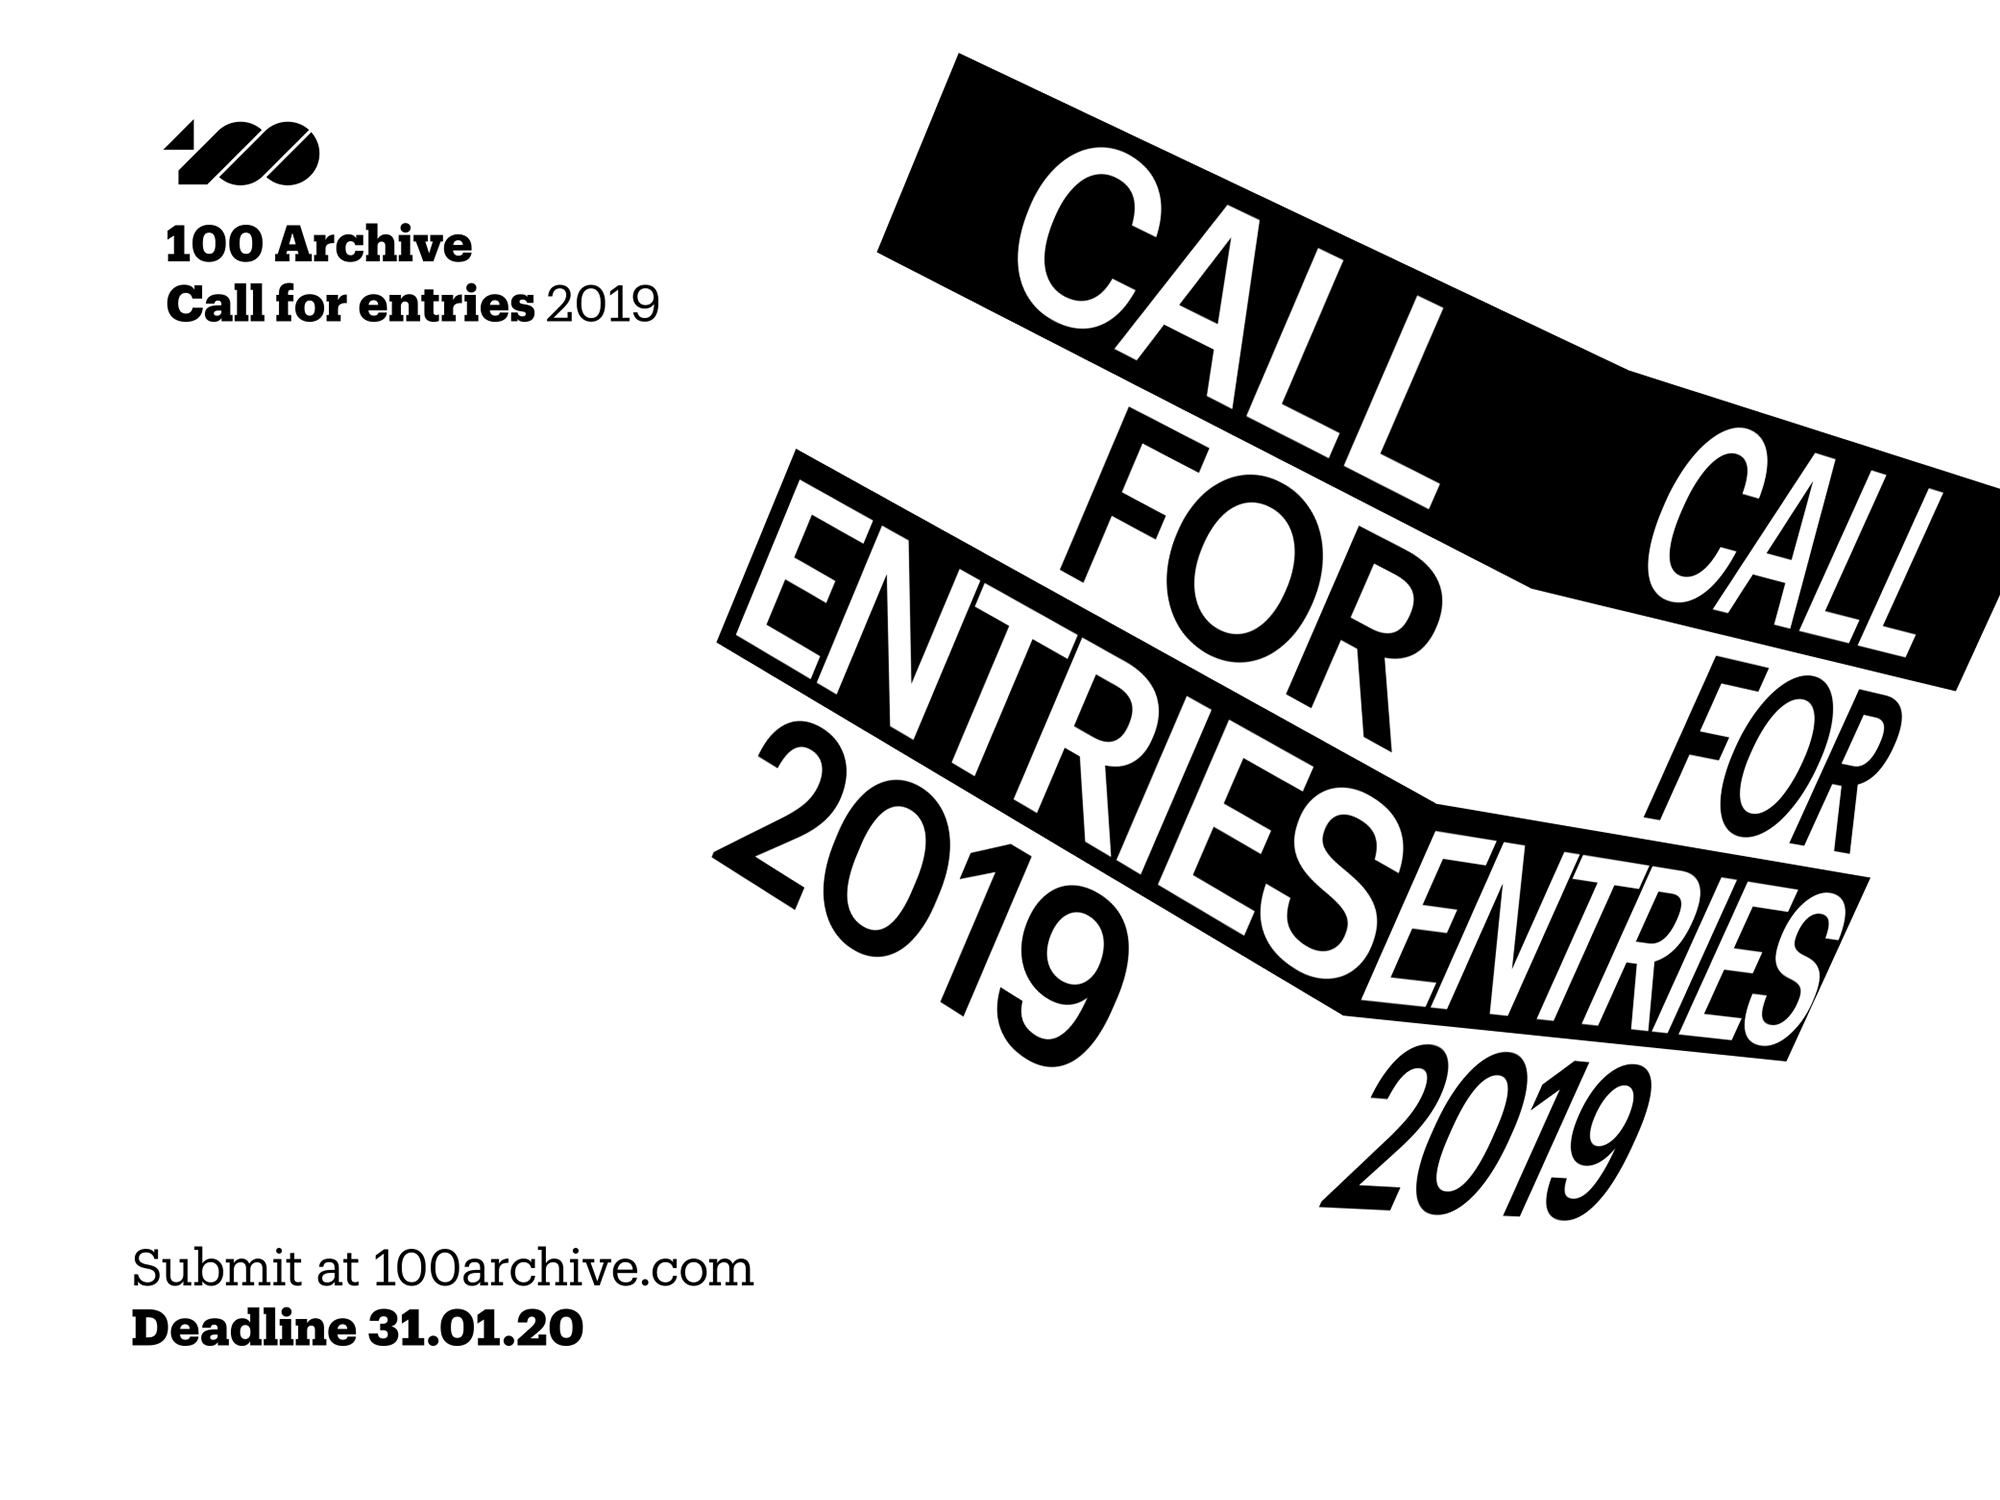 Cover image: Call for Entries 2019